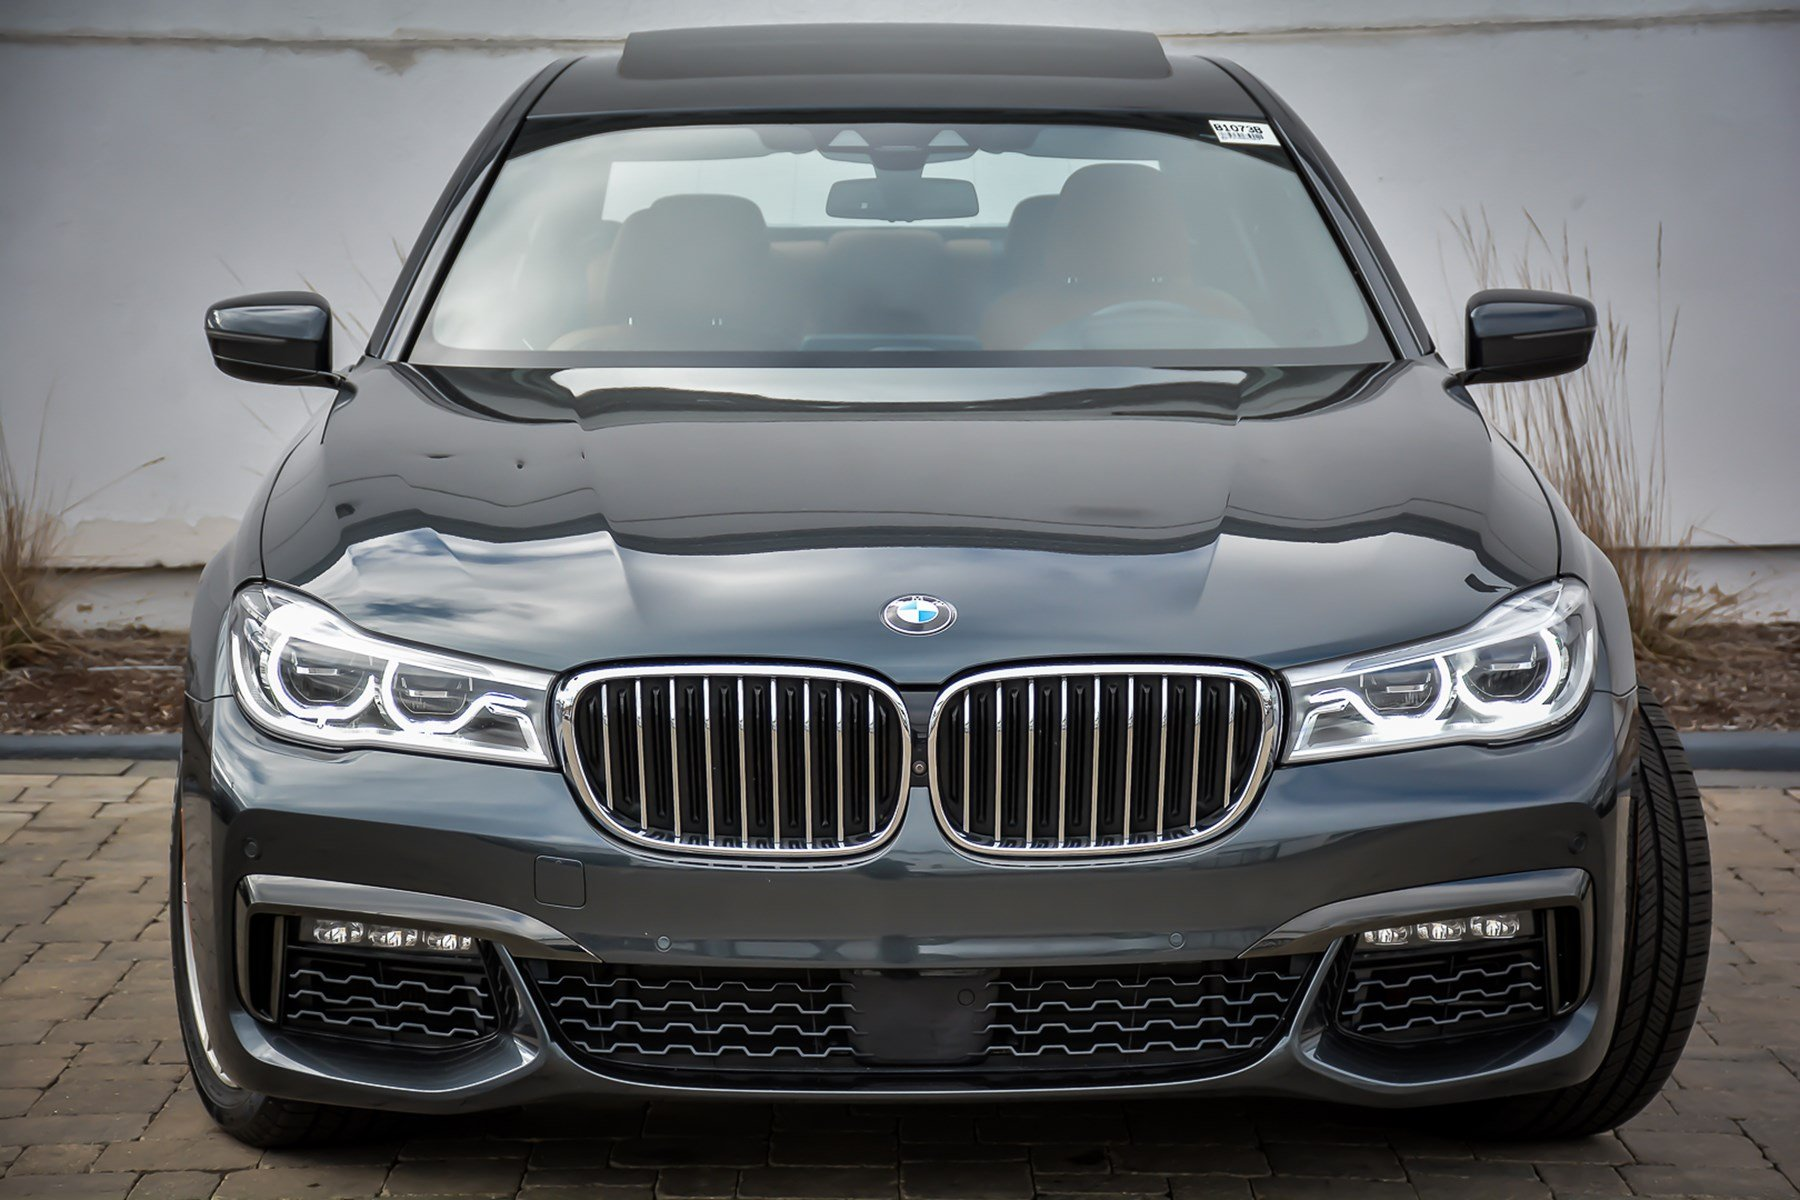 Pre-Owned 2016 BMW 7 Series 750i xDrive Executive M-Sport